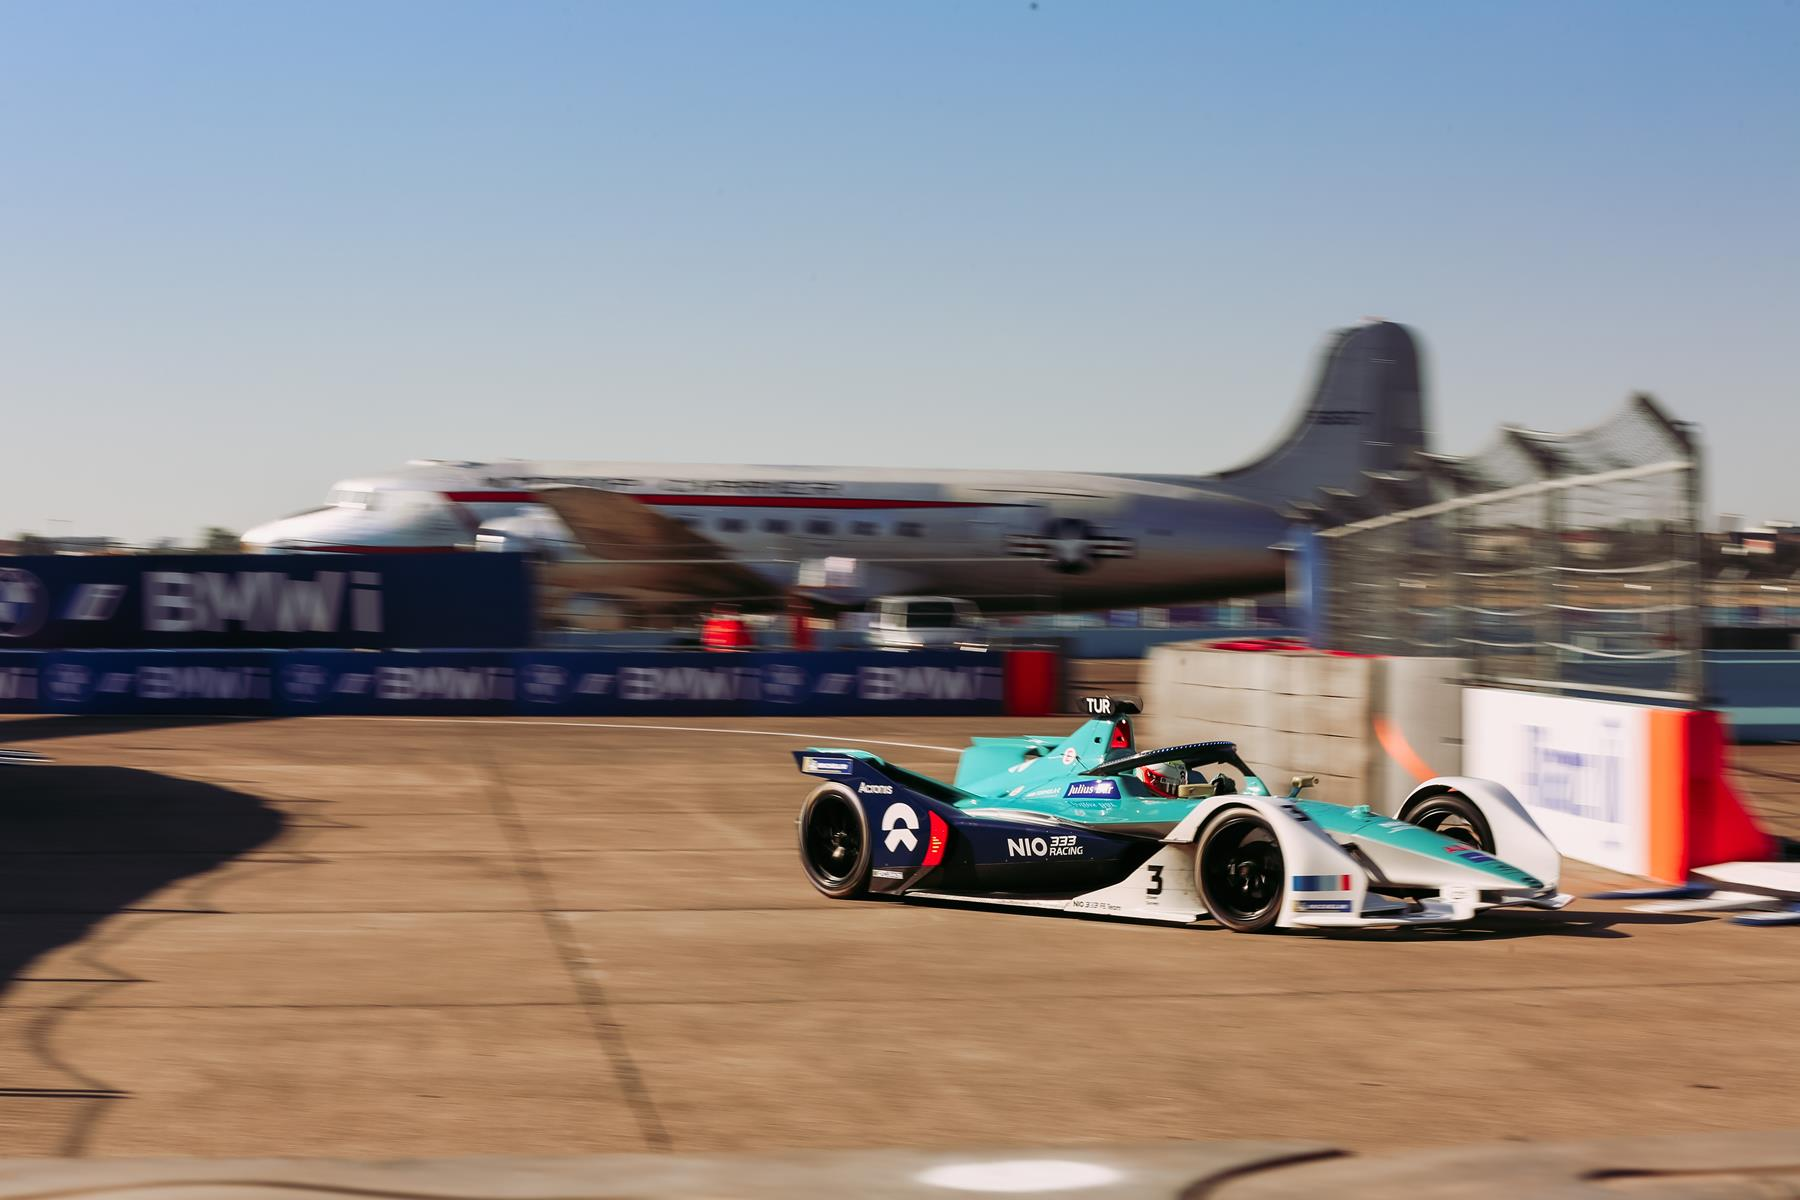 Oliver-Turvey-Nio-333-FE-Team-Berlin-E-Prix-2020-Tempelhof-new-layout-plane-in-the-background